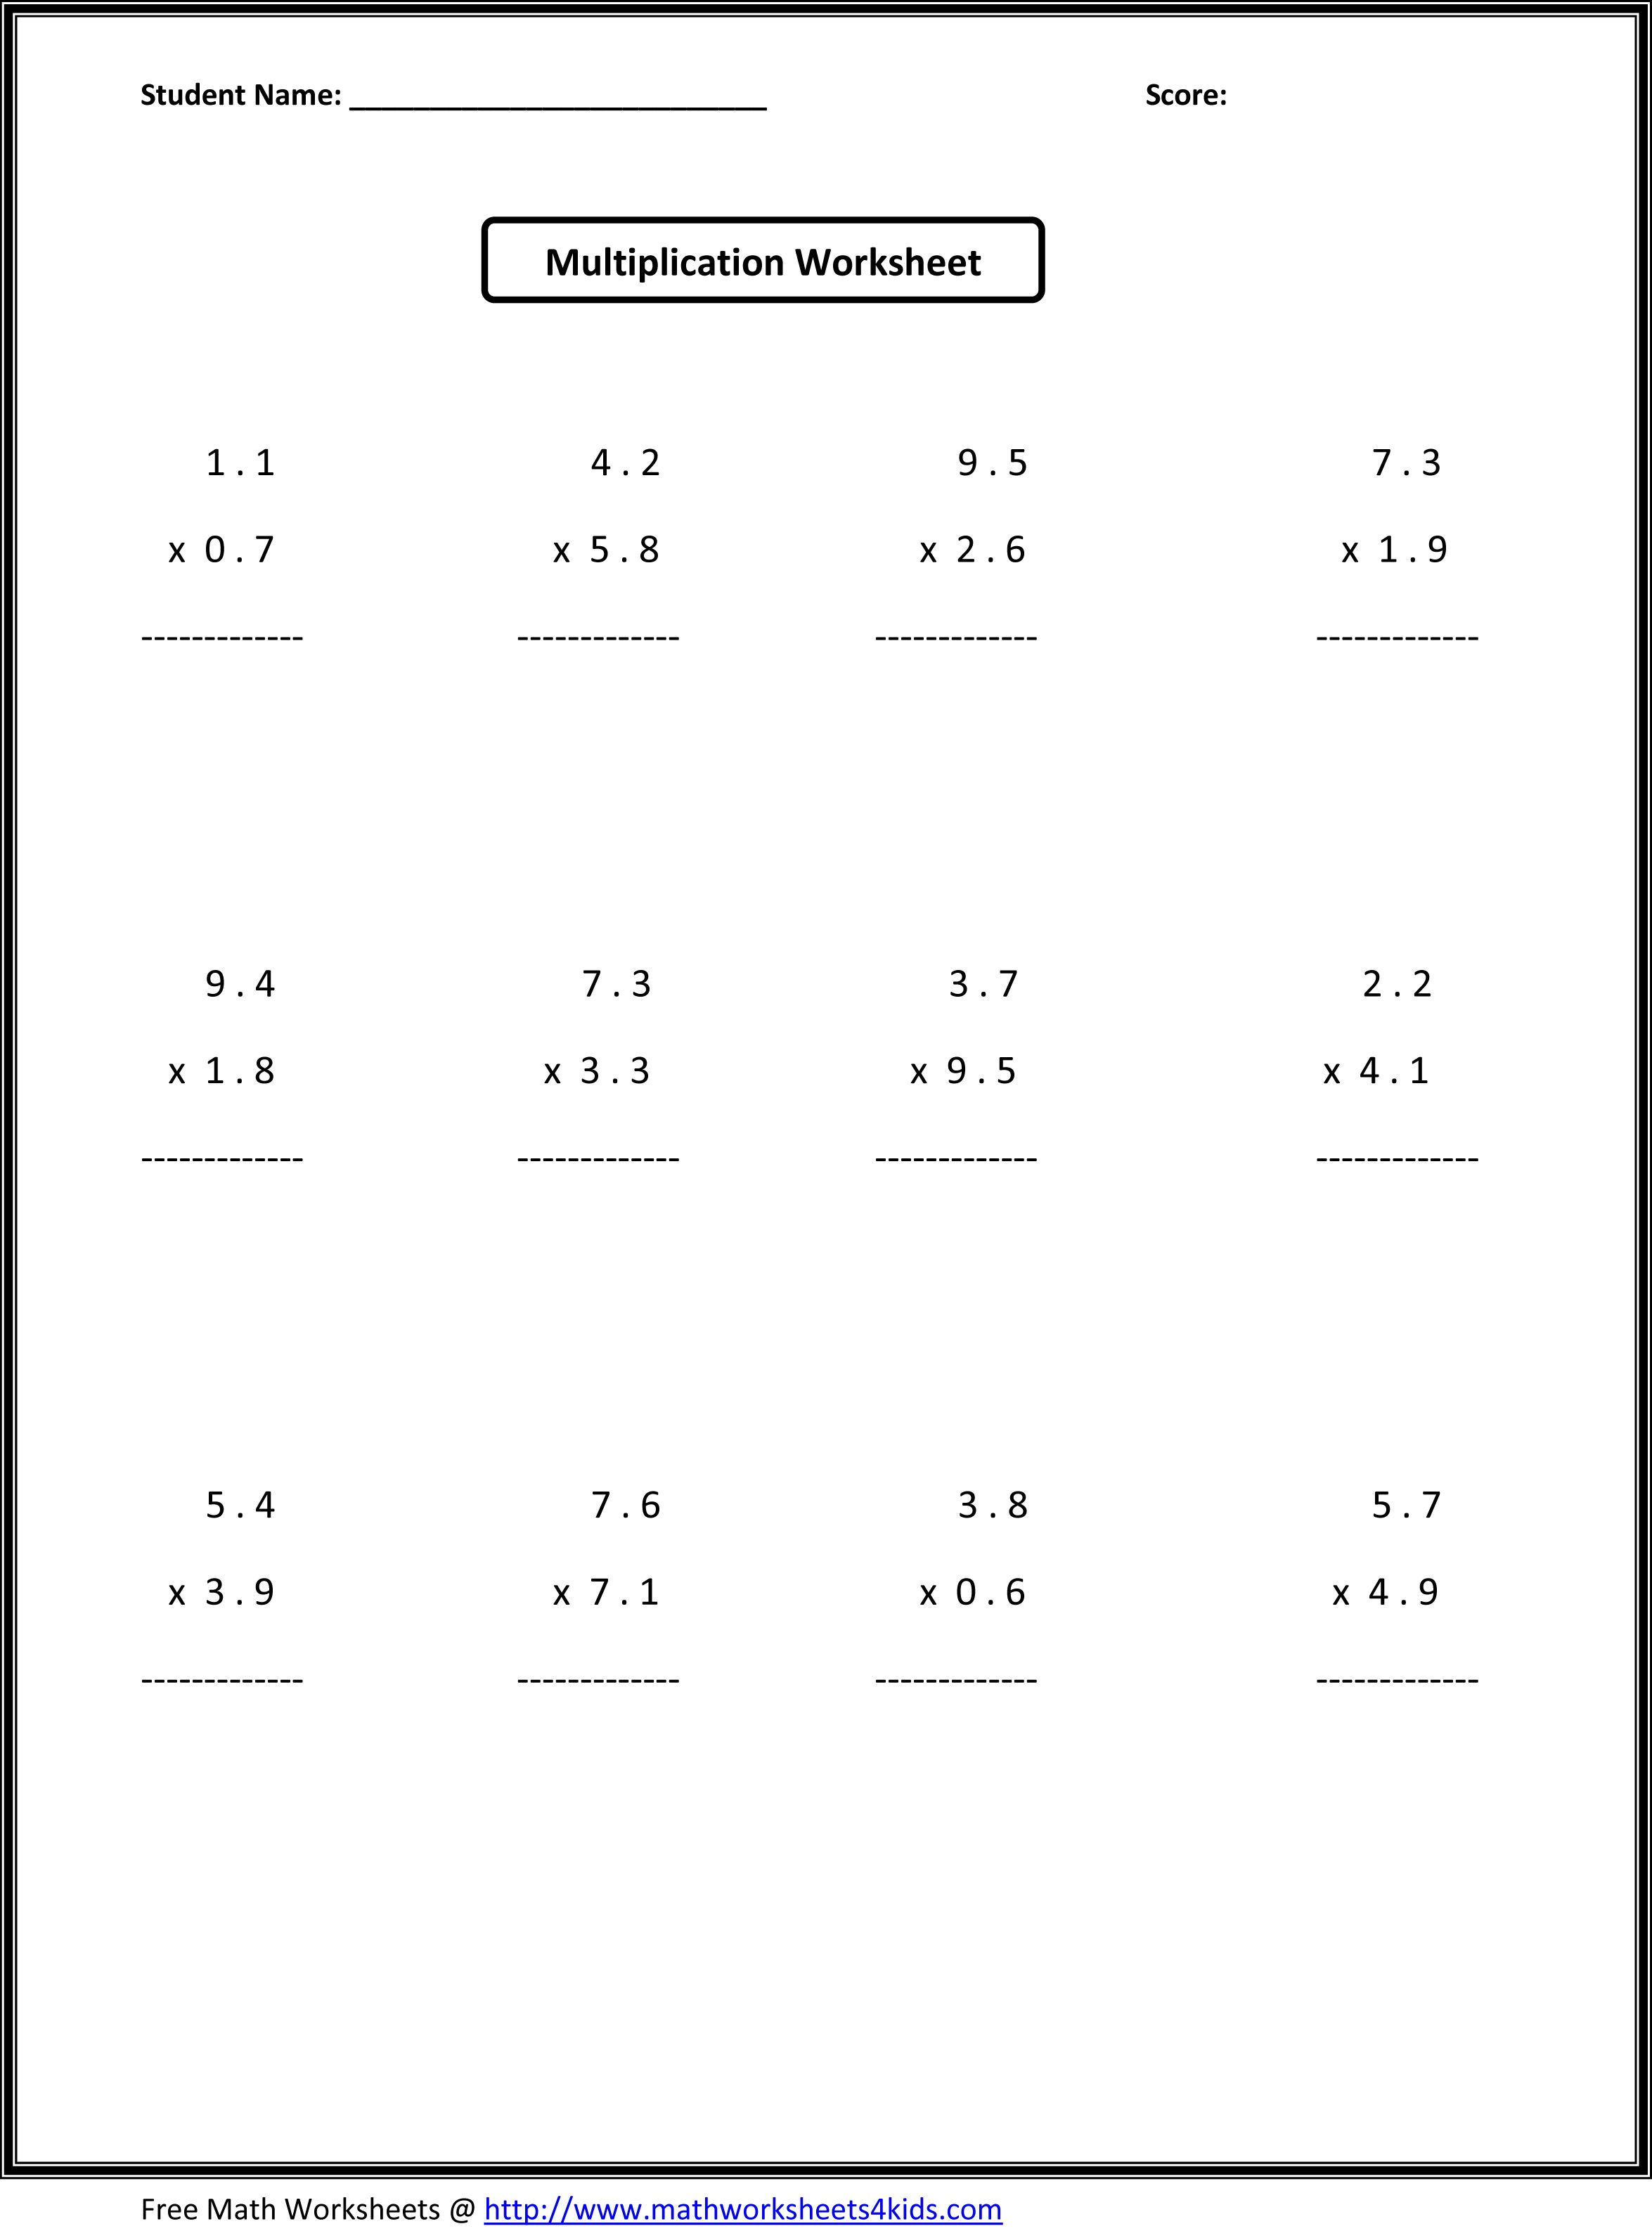 Worksheets Math Worksheets For 6th Graders 7th grade math worksheets value absolute sixth worksheets